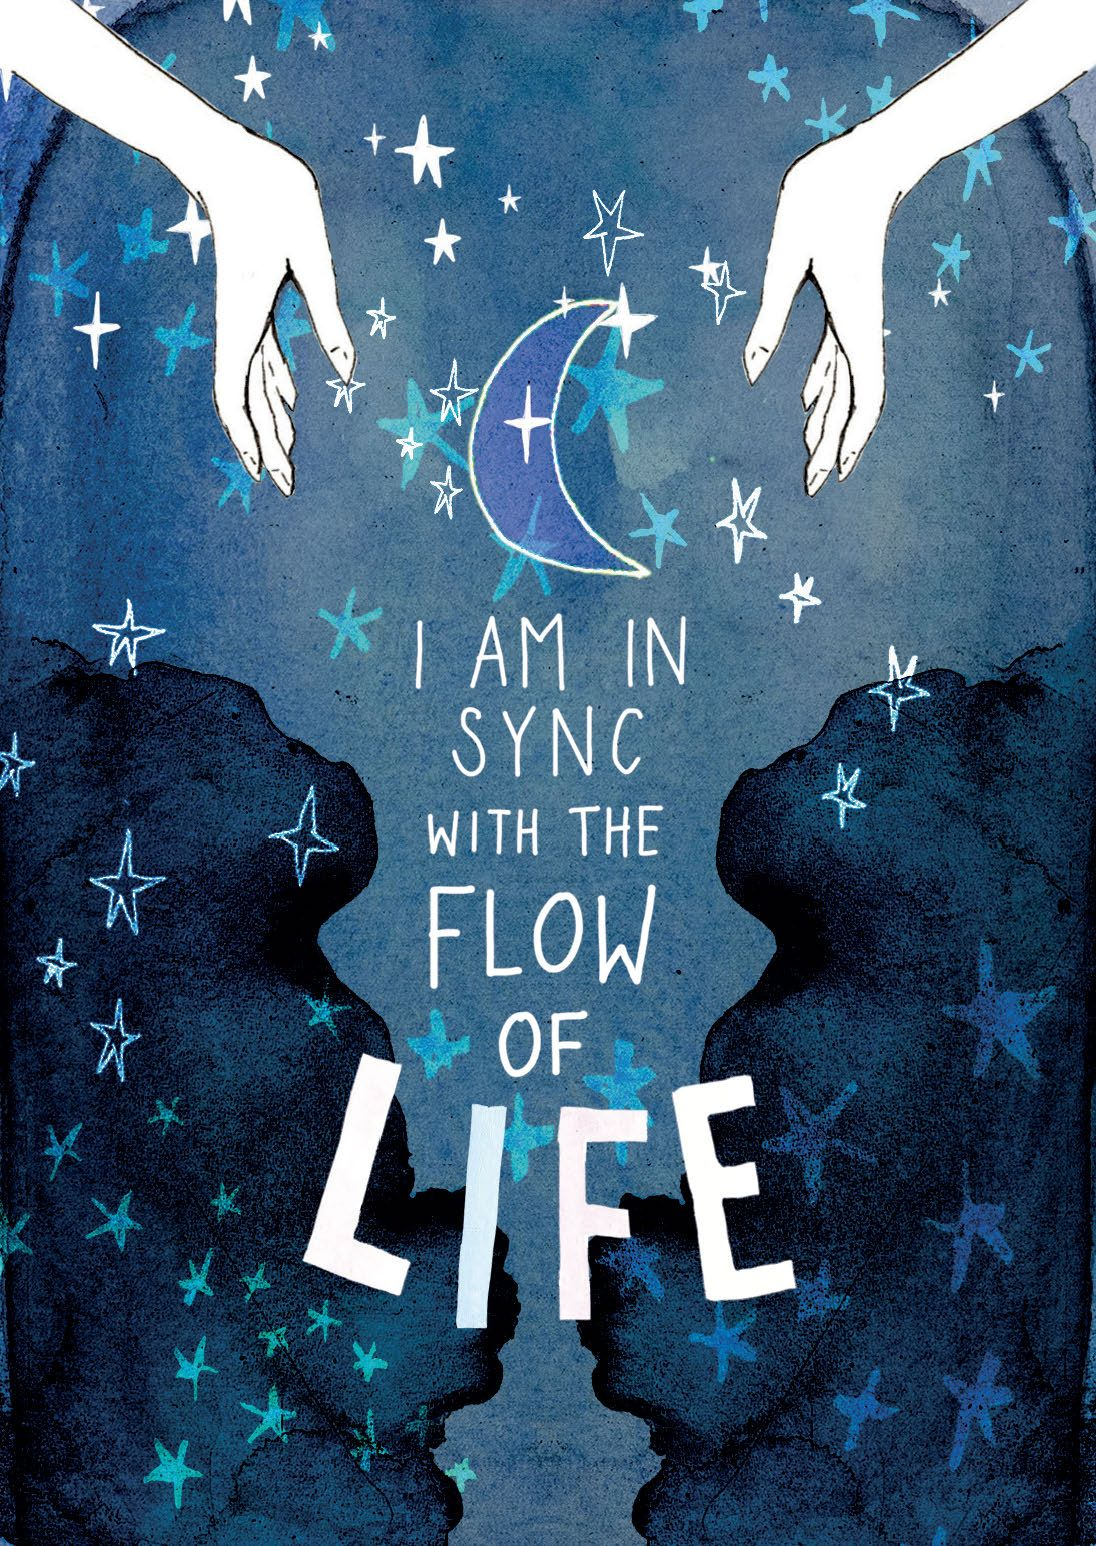 I AM IN SYNC WITH THE FLOW OF LIFE.